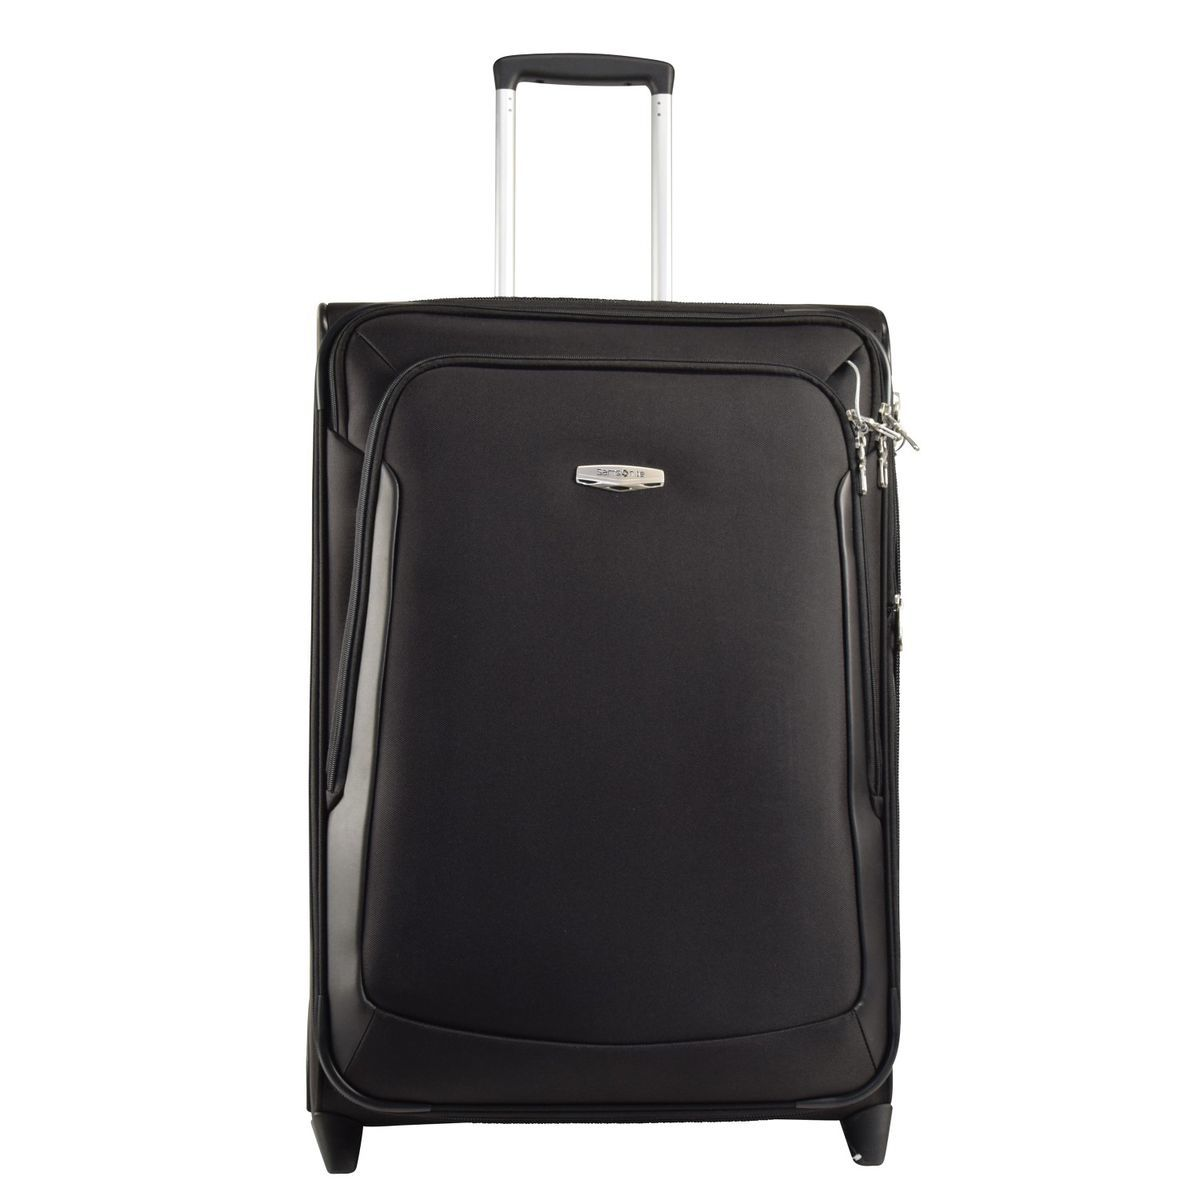 Samsonite X Blade 3.0 Upright 2-Rollen Trolley 69 cm, black